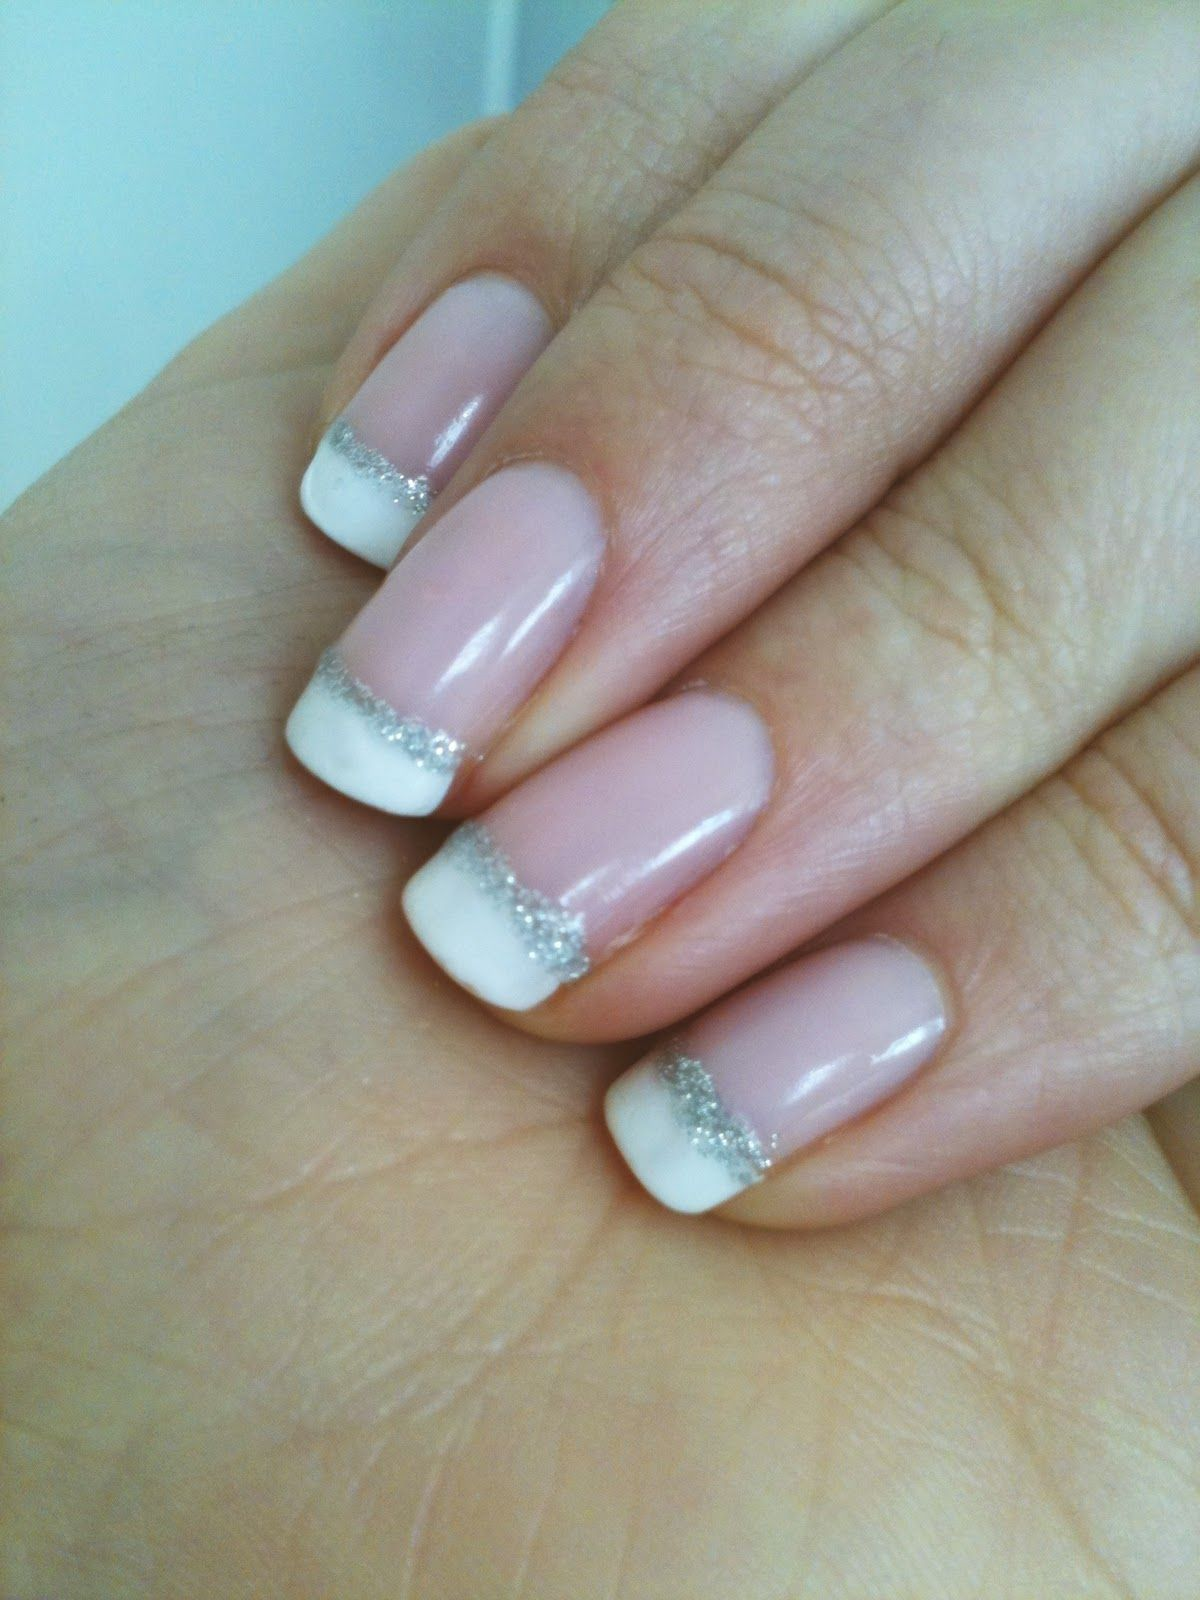 french manicure with a line of glitter pictures - Google Search | W ...